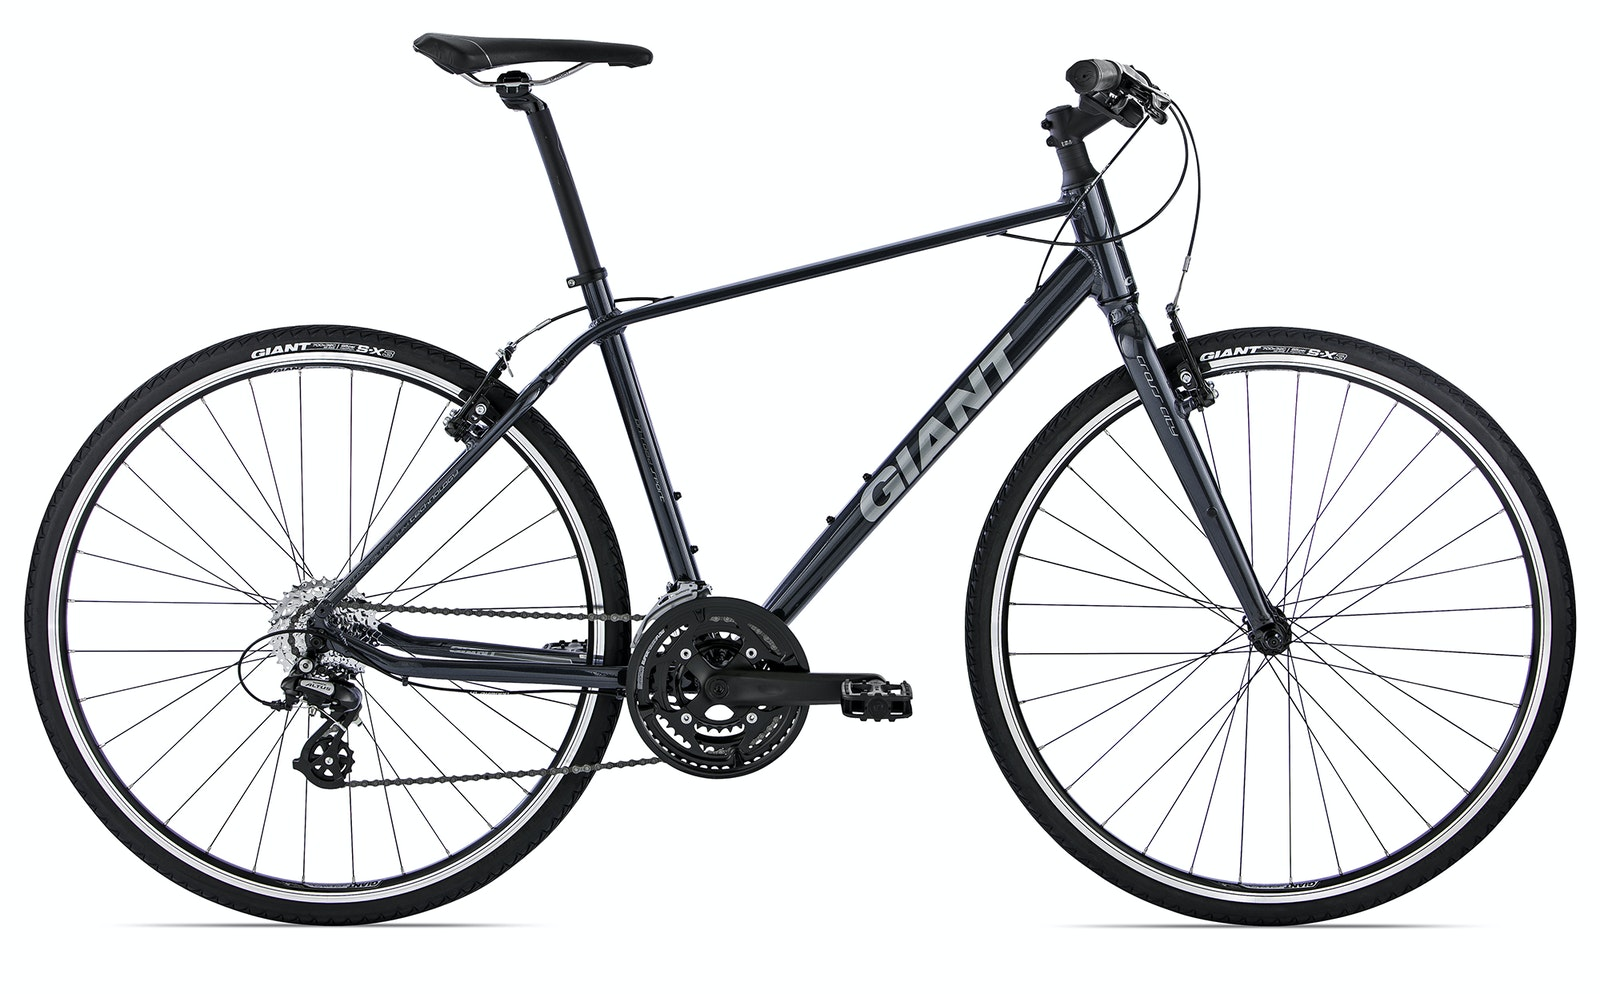 Giant Cross City 2 2016 Flat Bar Road Bikes For Sale In